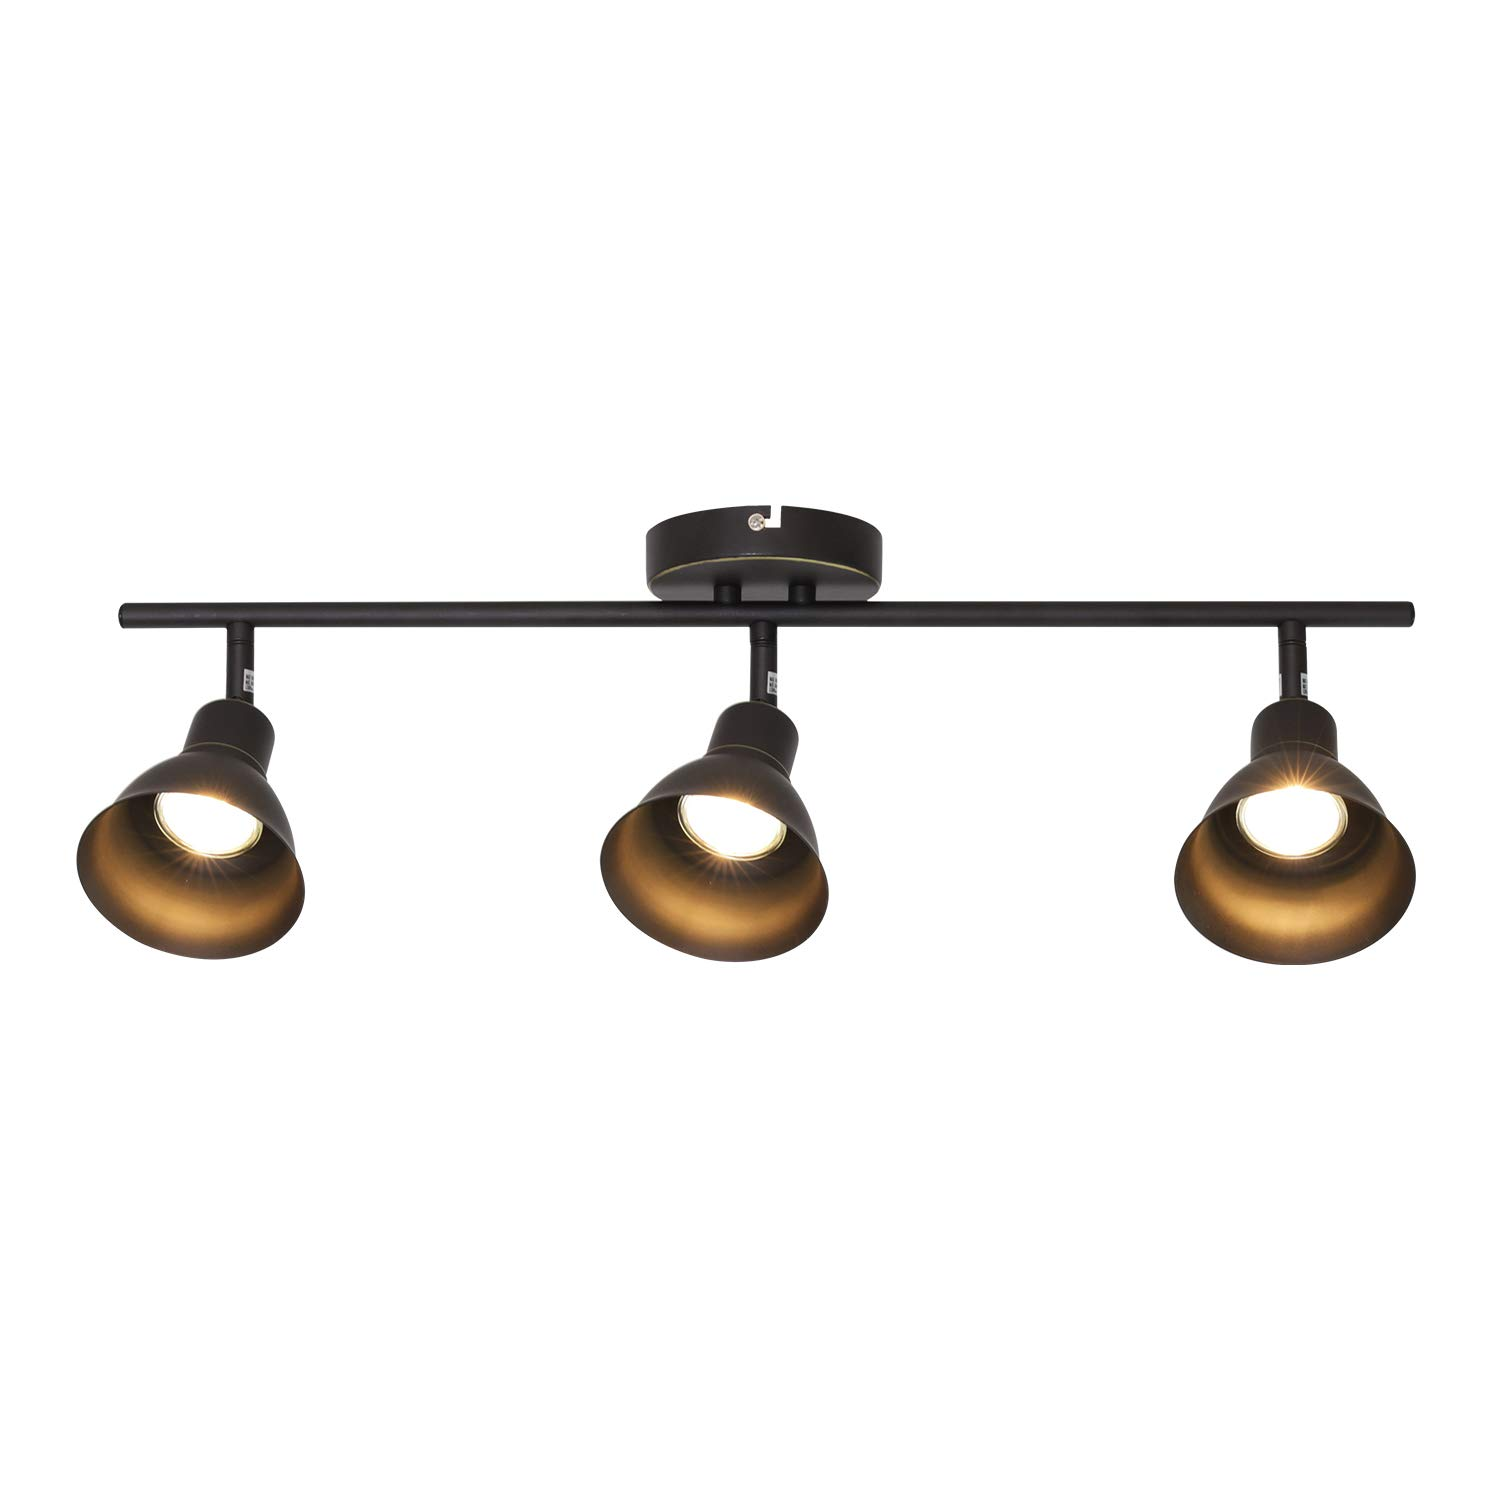 Melucee ceiling track lighting with 3 light adjustable track heads oil rubbed bronze spotlights kitchen track lighting fixtures ceiling 35w gu10 base